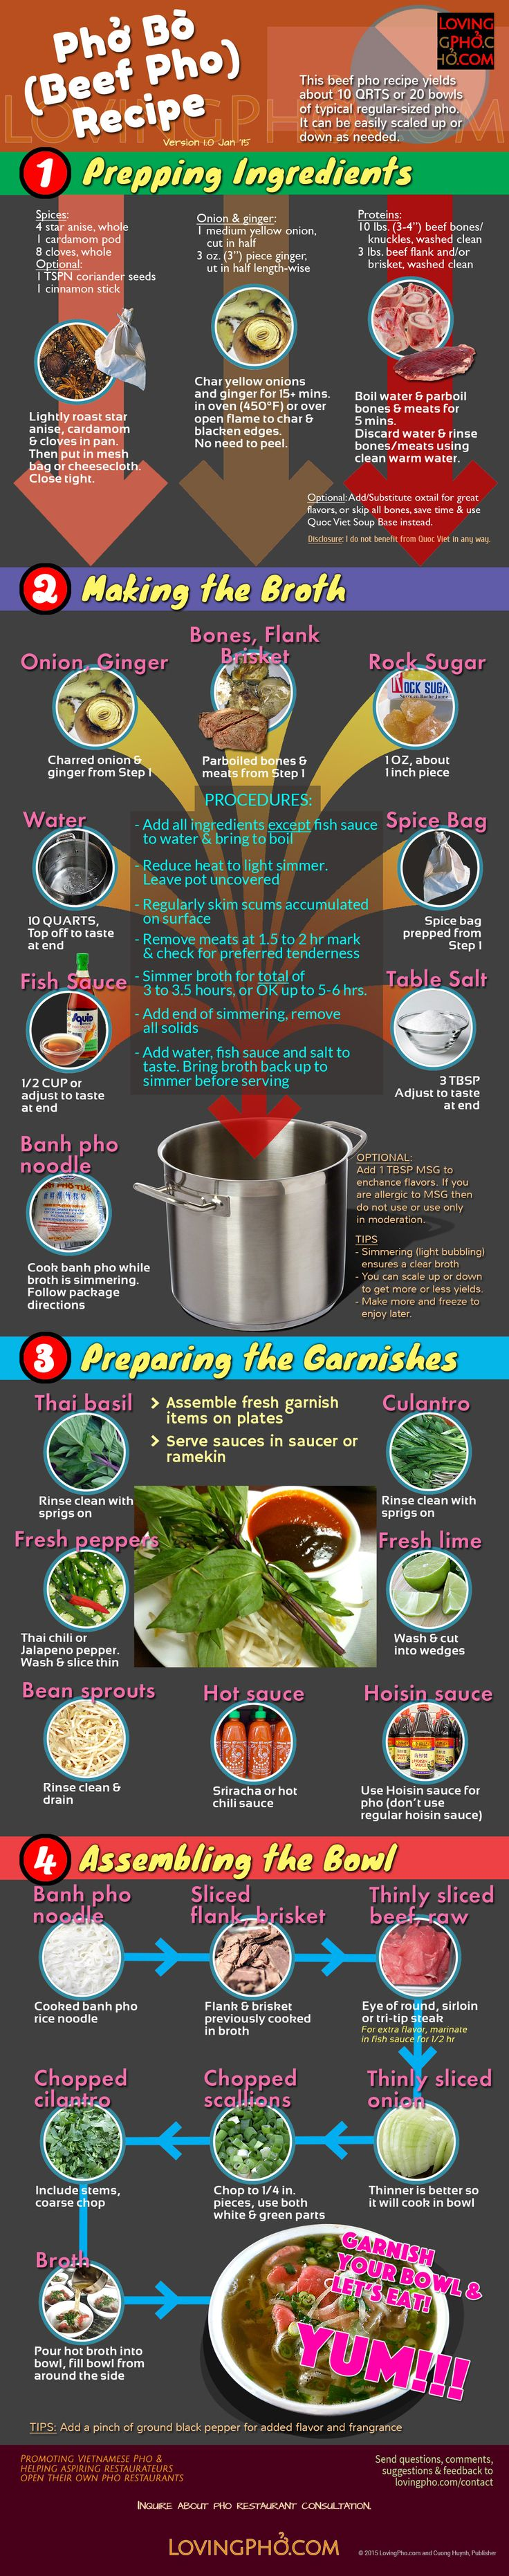 Beef pho recipe infographic by lovingpho.com. Detailed beef pho (phở bò) recipe from prep to serve. This beef pho recipe makes about 20 bowls. Freeze leftover broth for quick beef pho later any time.